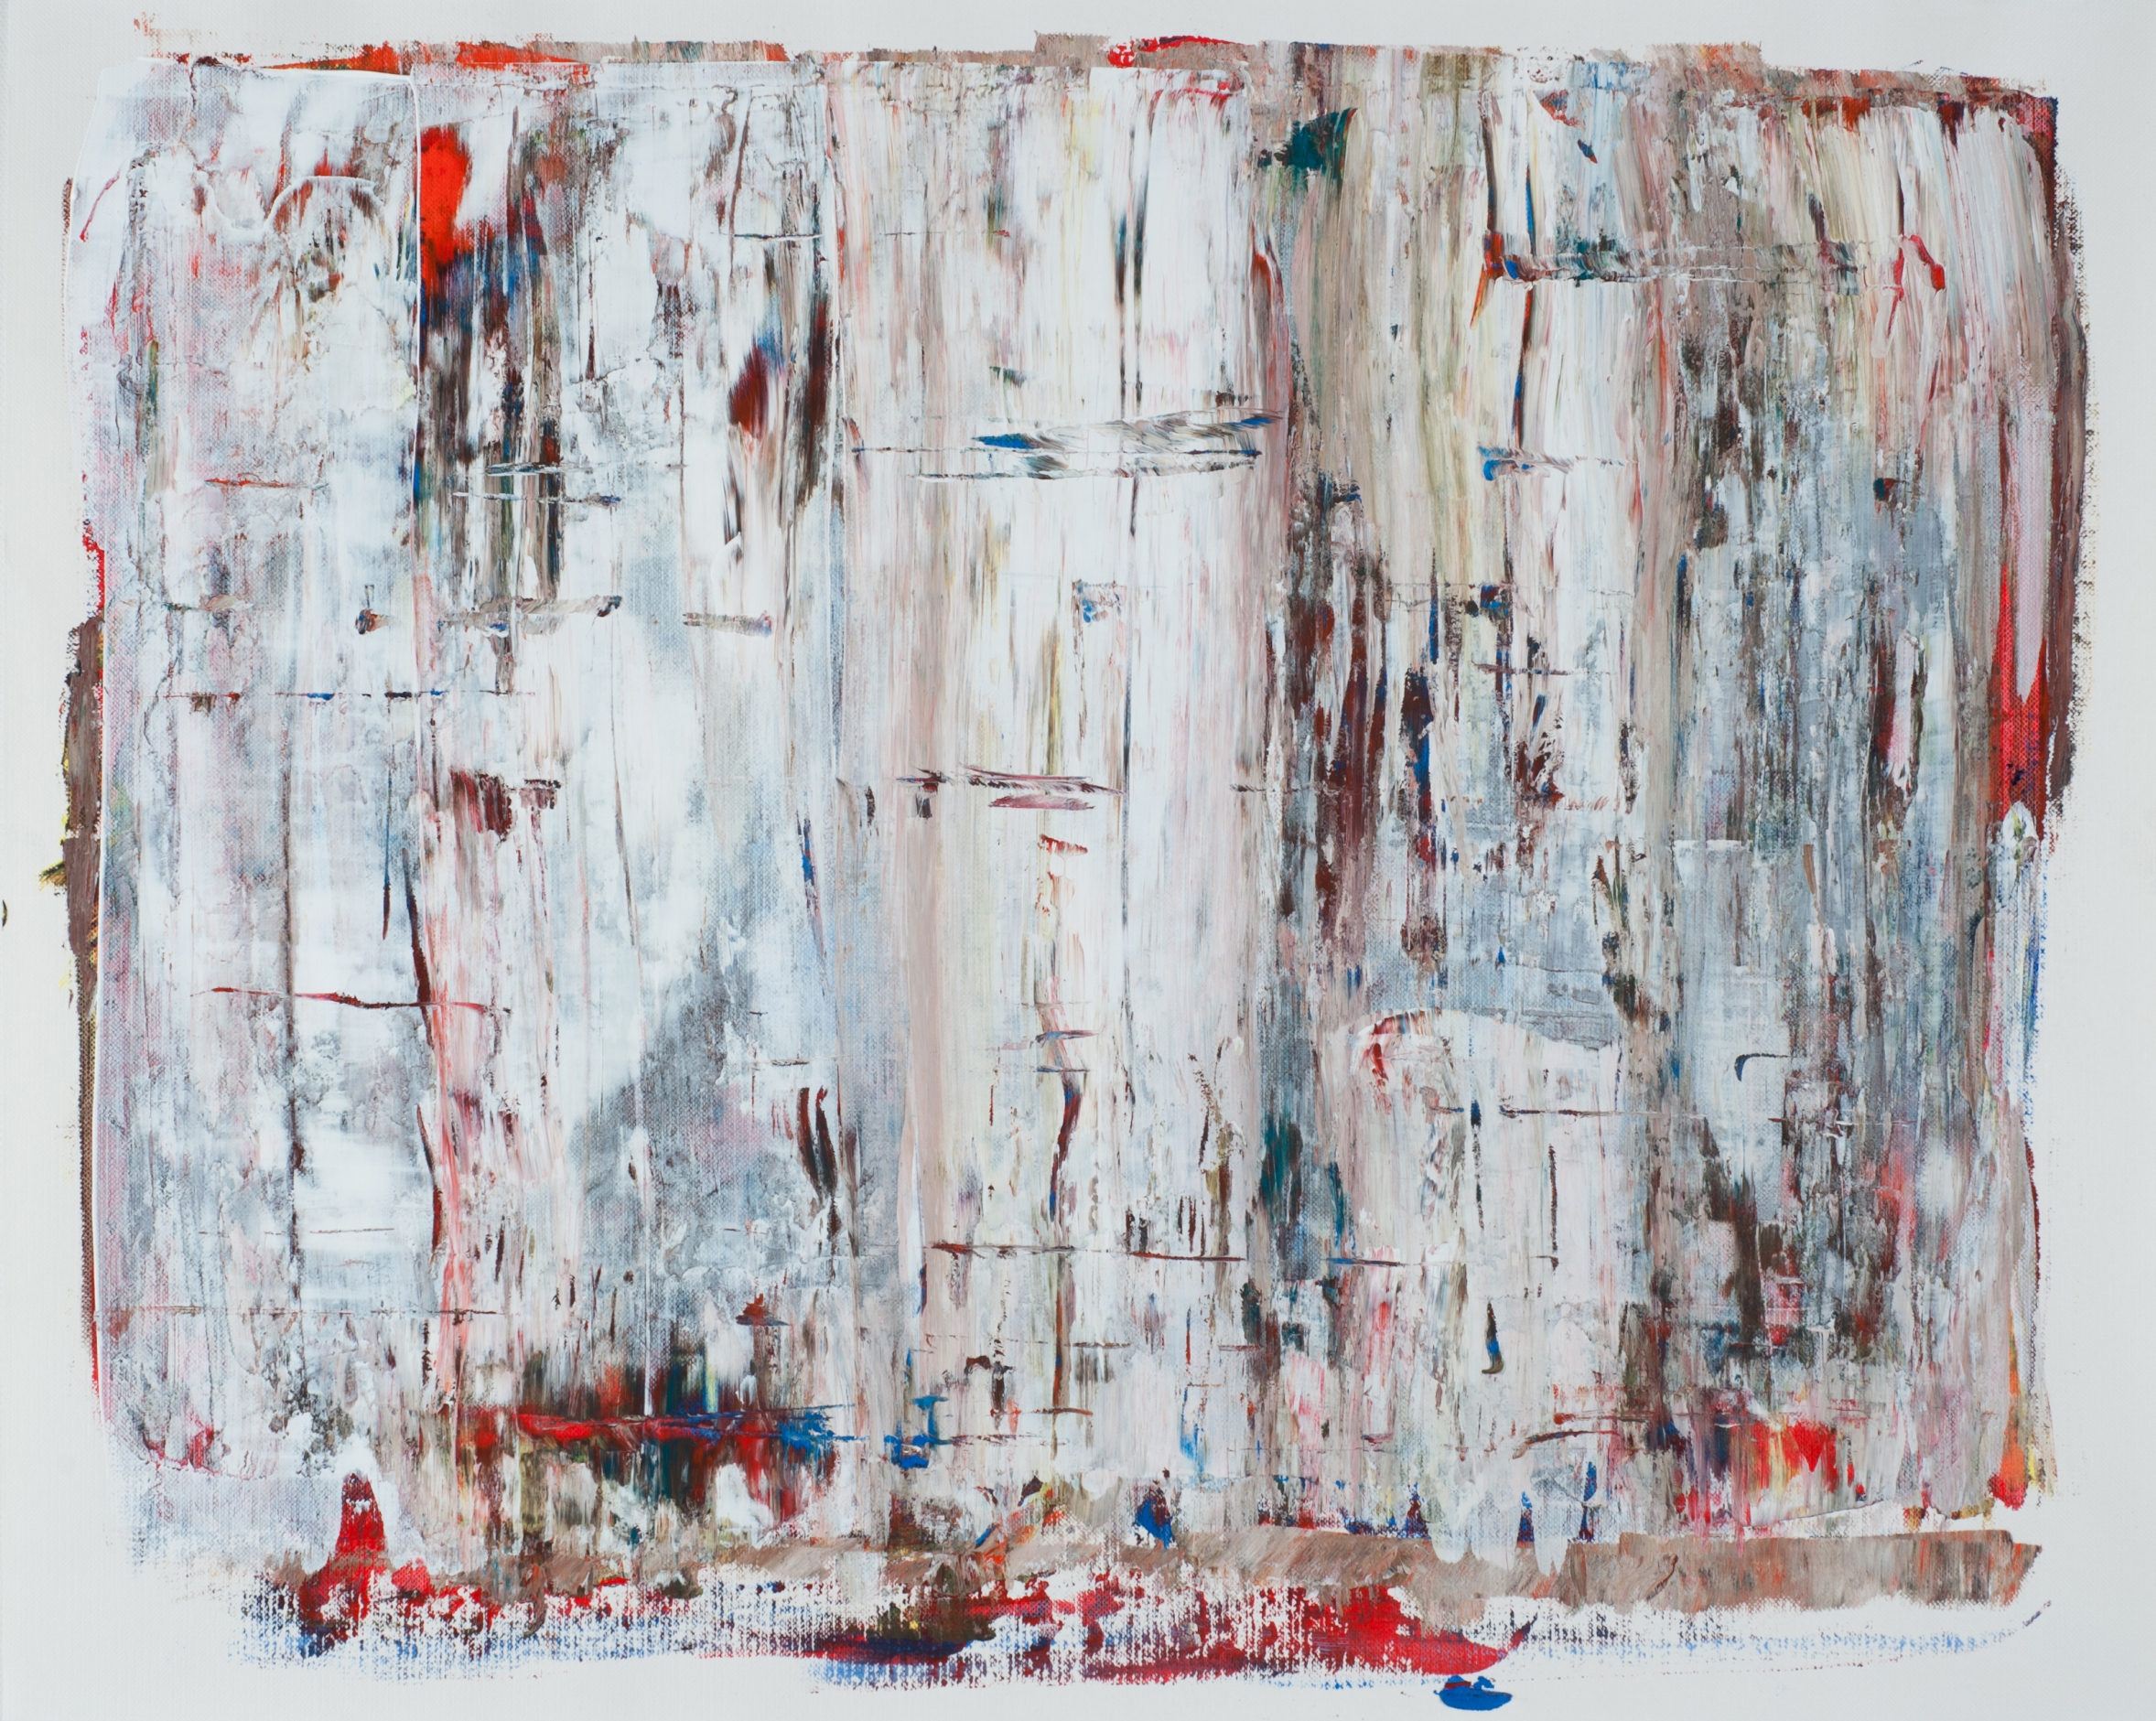 PAPER ABS 2012 White Squeegee 2012 16x20 in